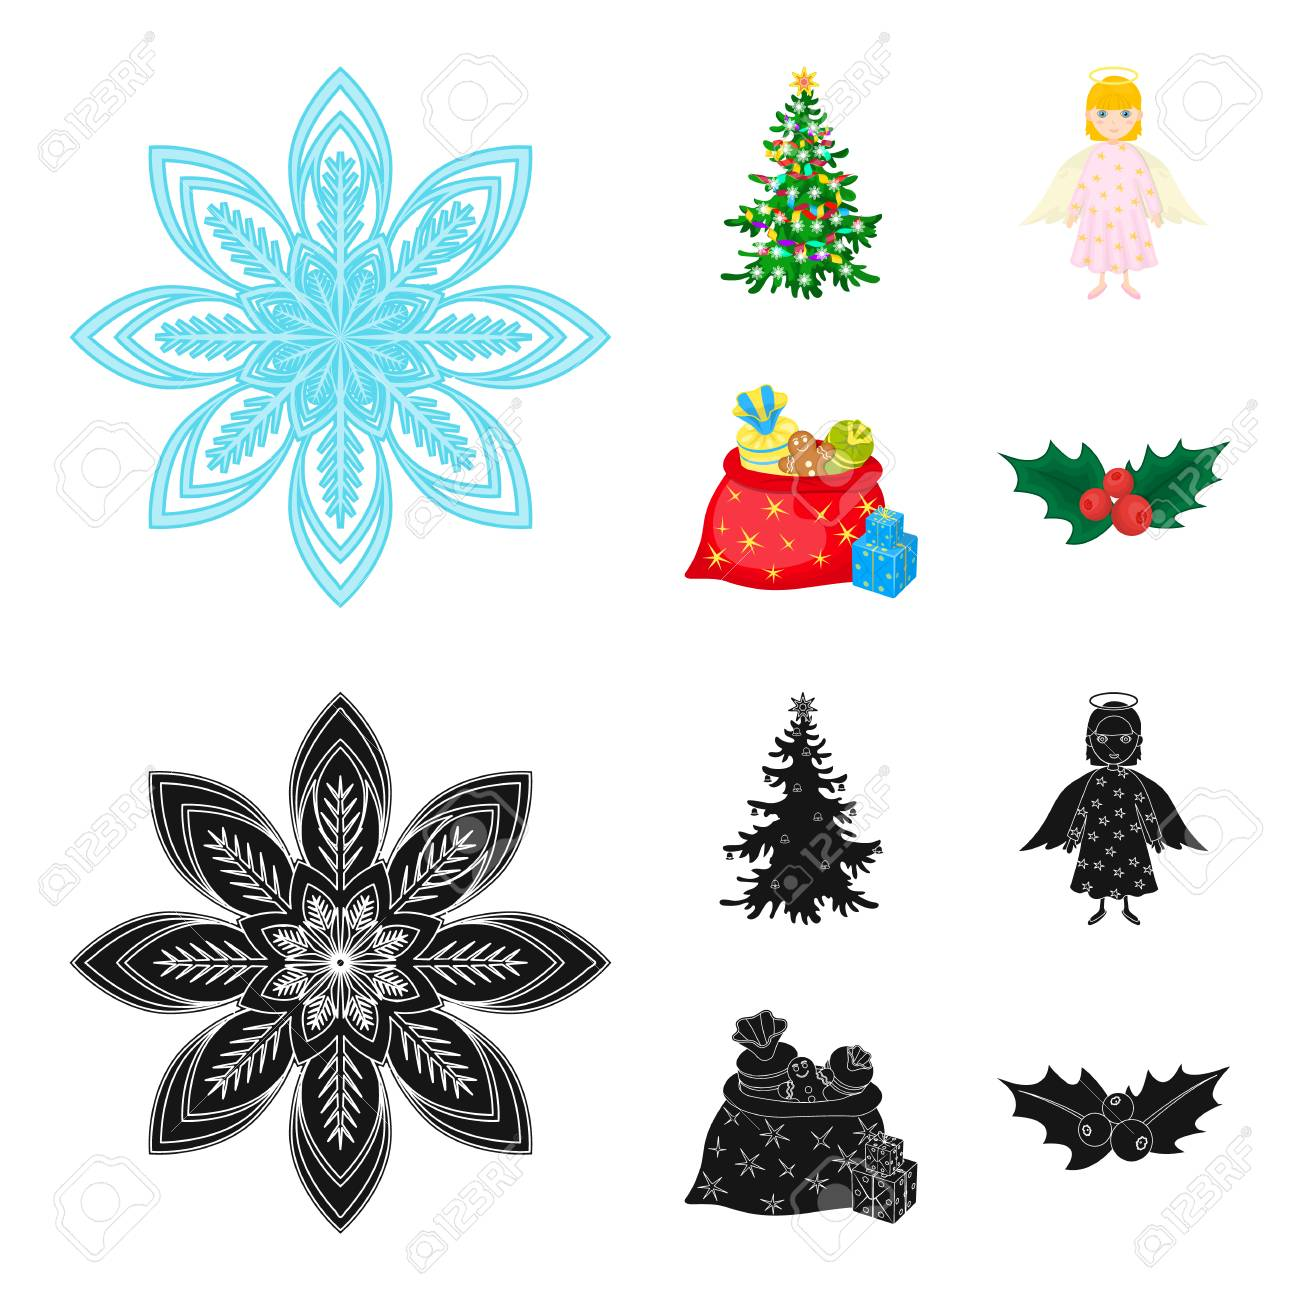 Christmas Tree Angel Gifts And Holly Cartoon Black Icons In